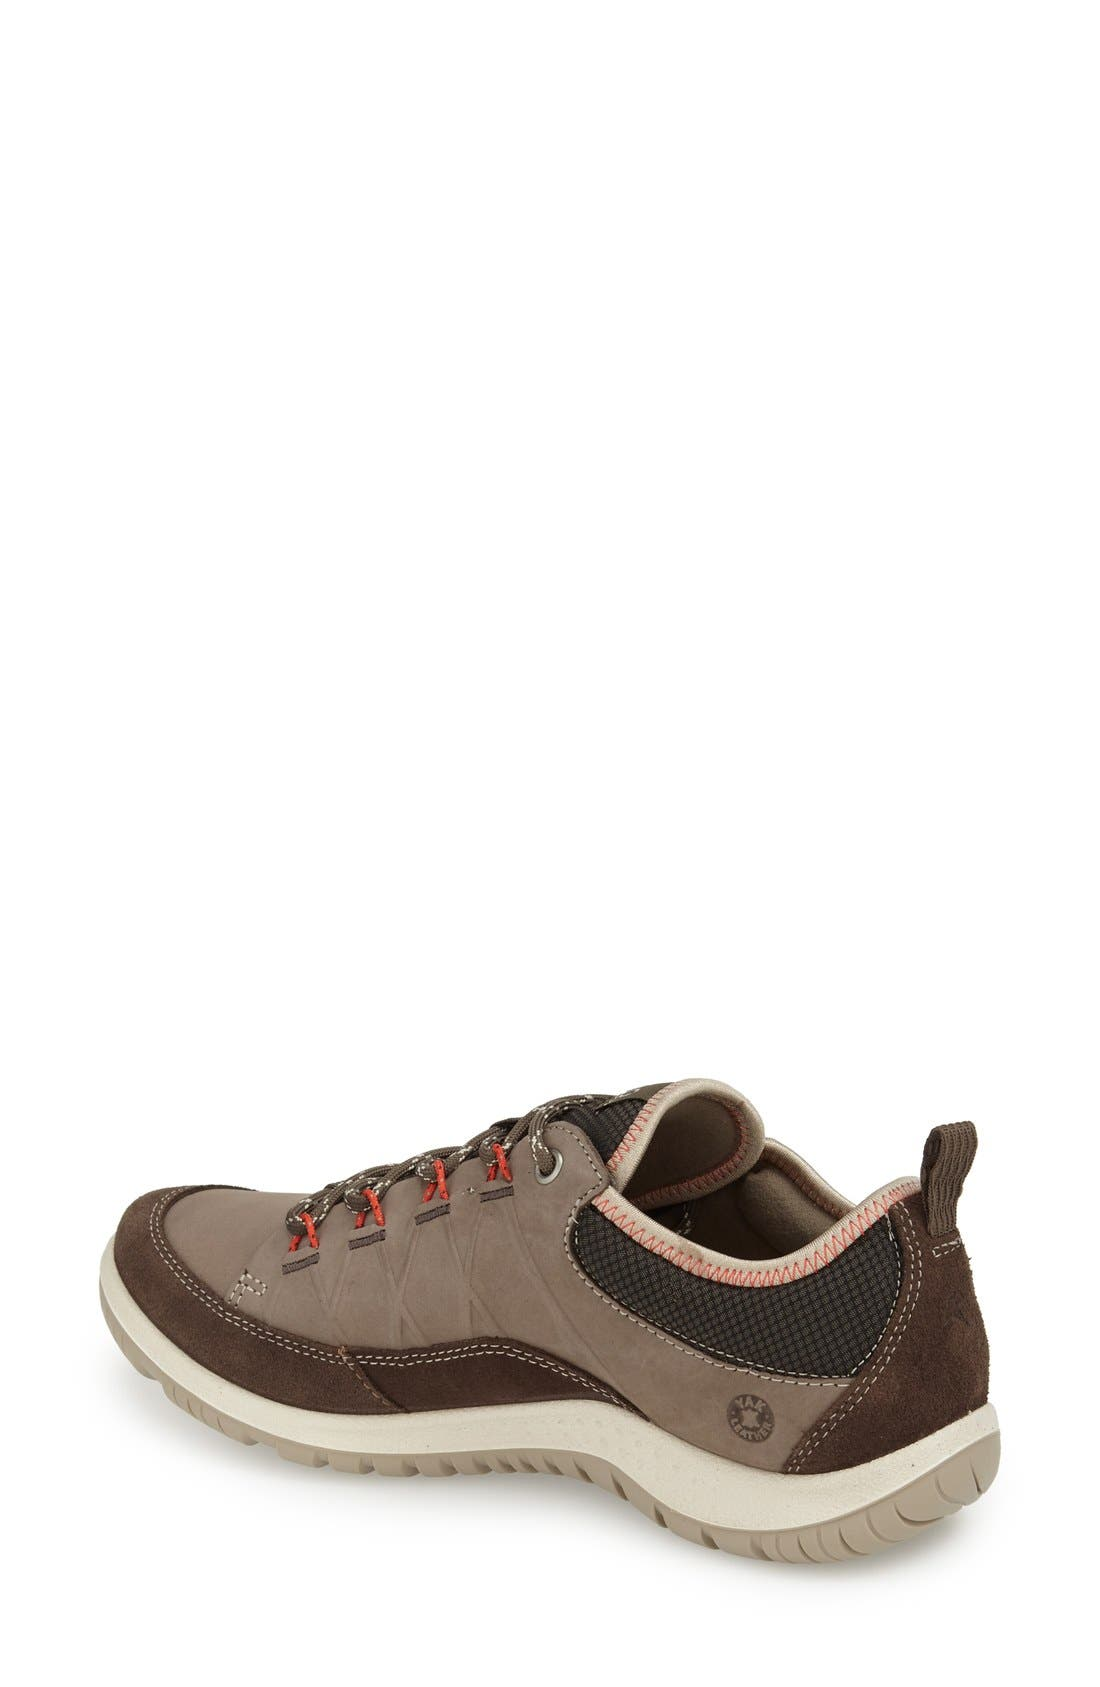 'Aspina' Sneaker,                             Alternate thumbnail 2, color,                             Dark Clay Oiled Suede